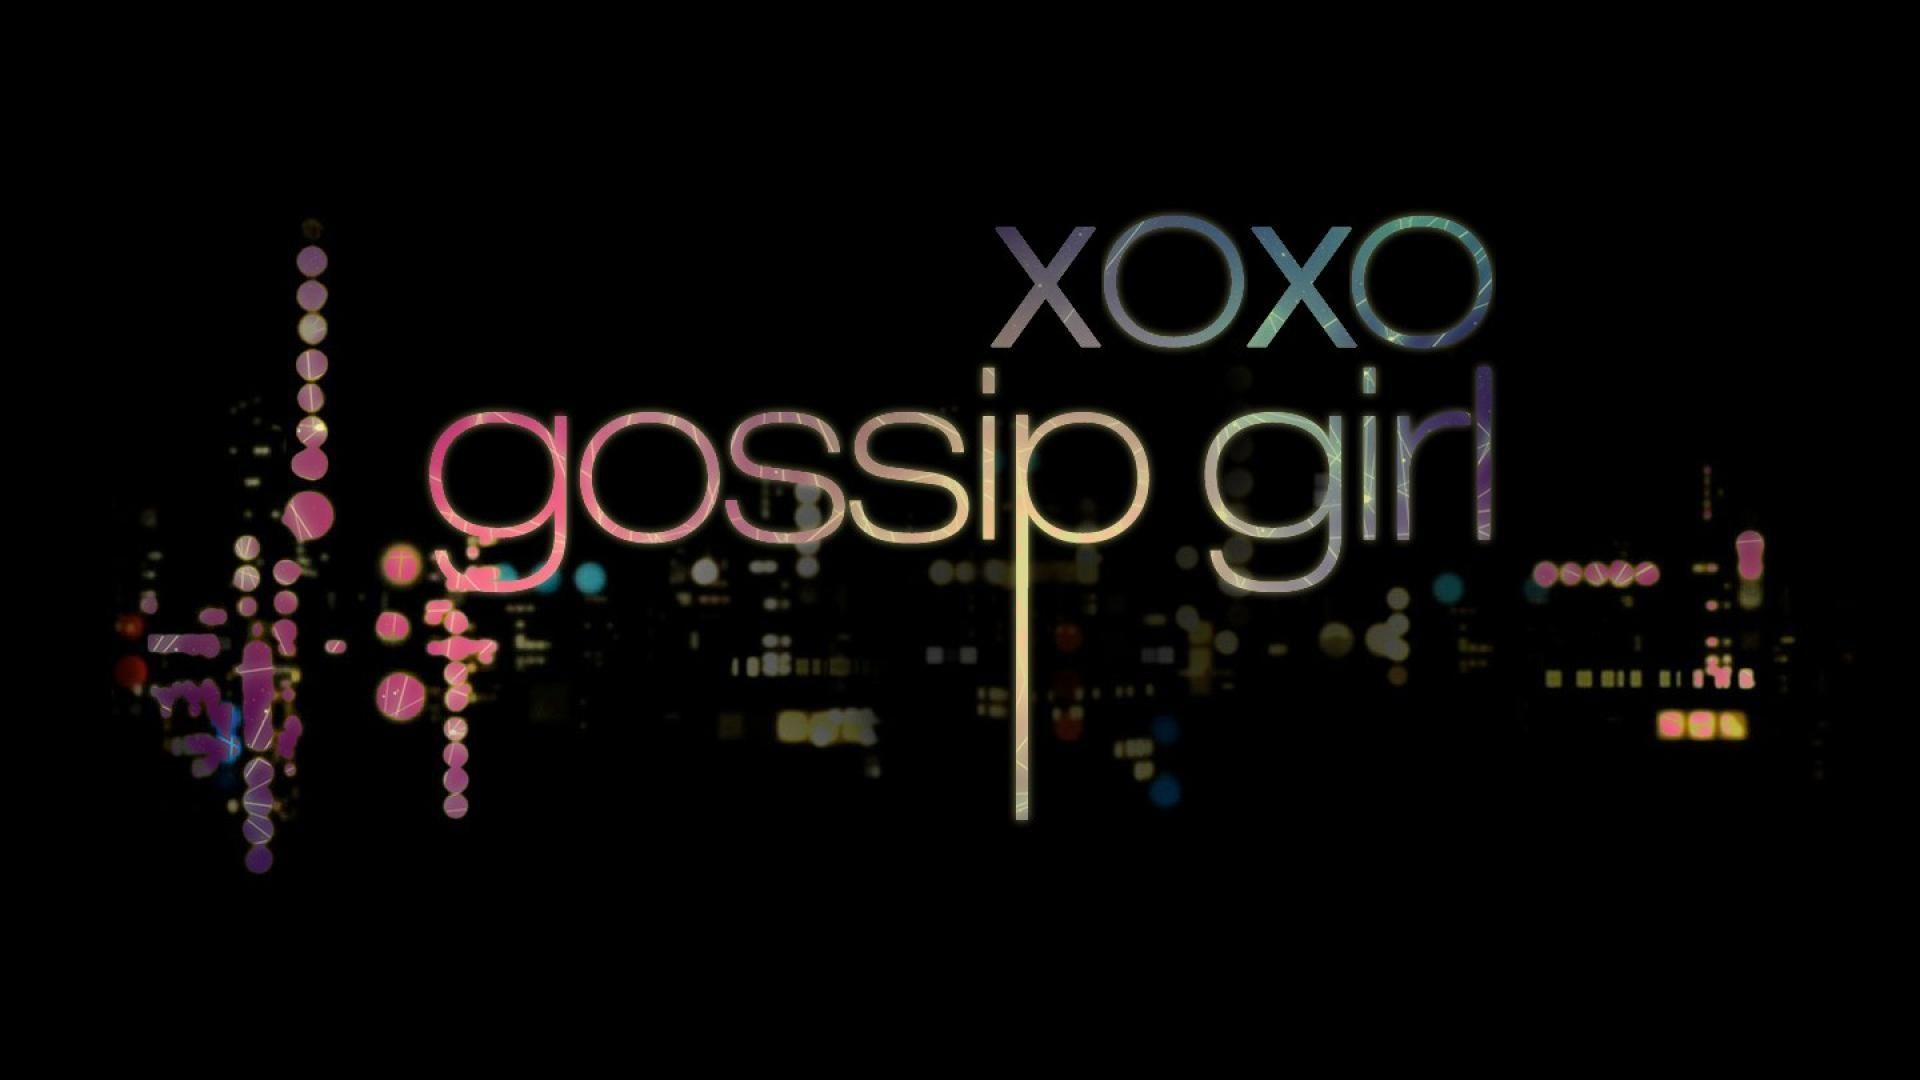 Gossip girl xoxo wallpaper | (136251)